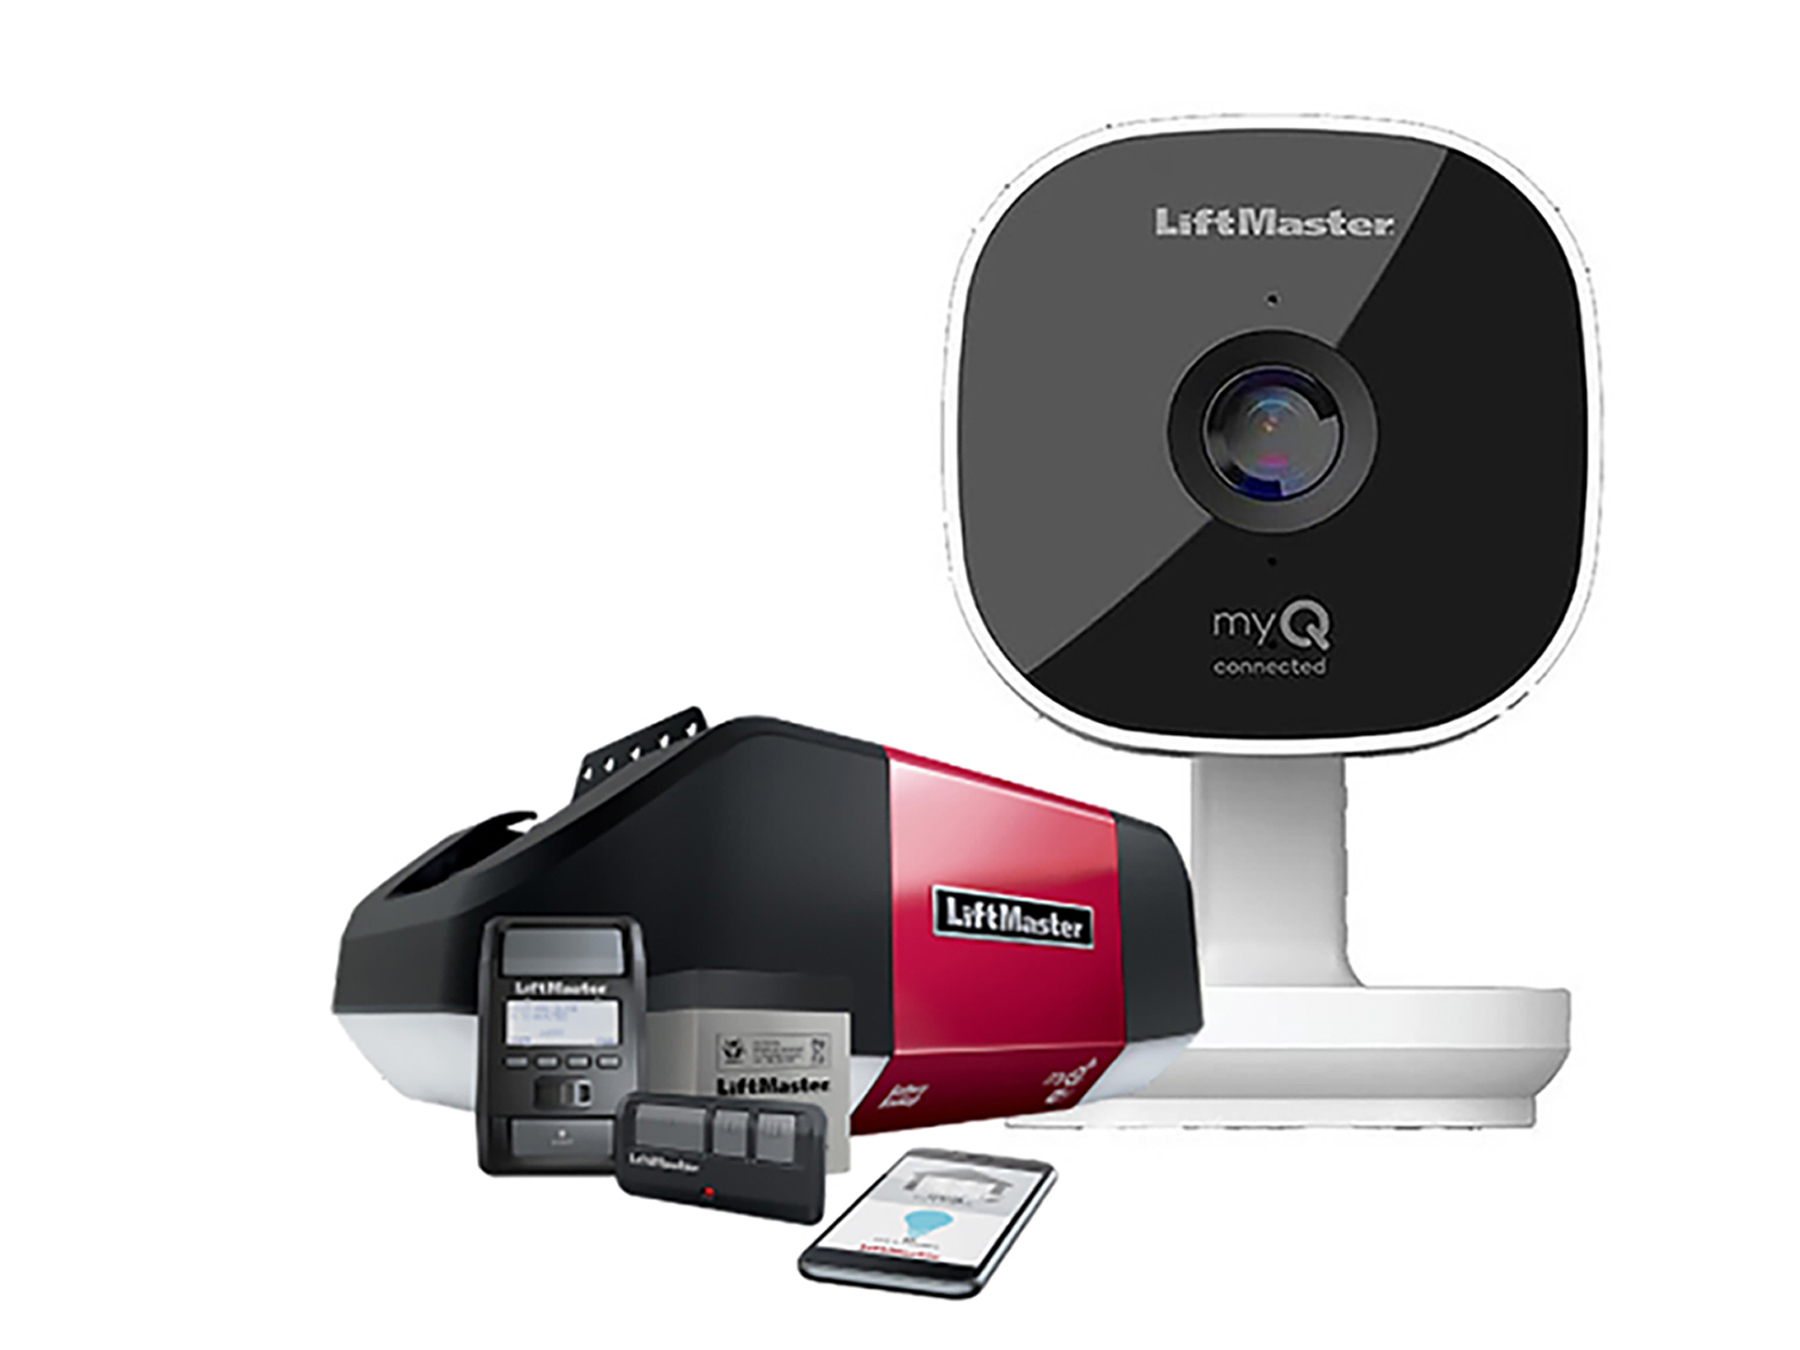 liftmaster products